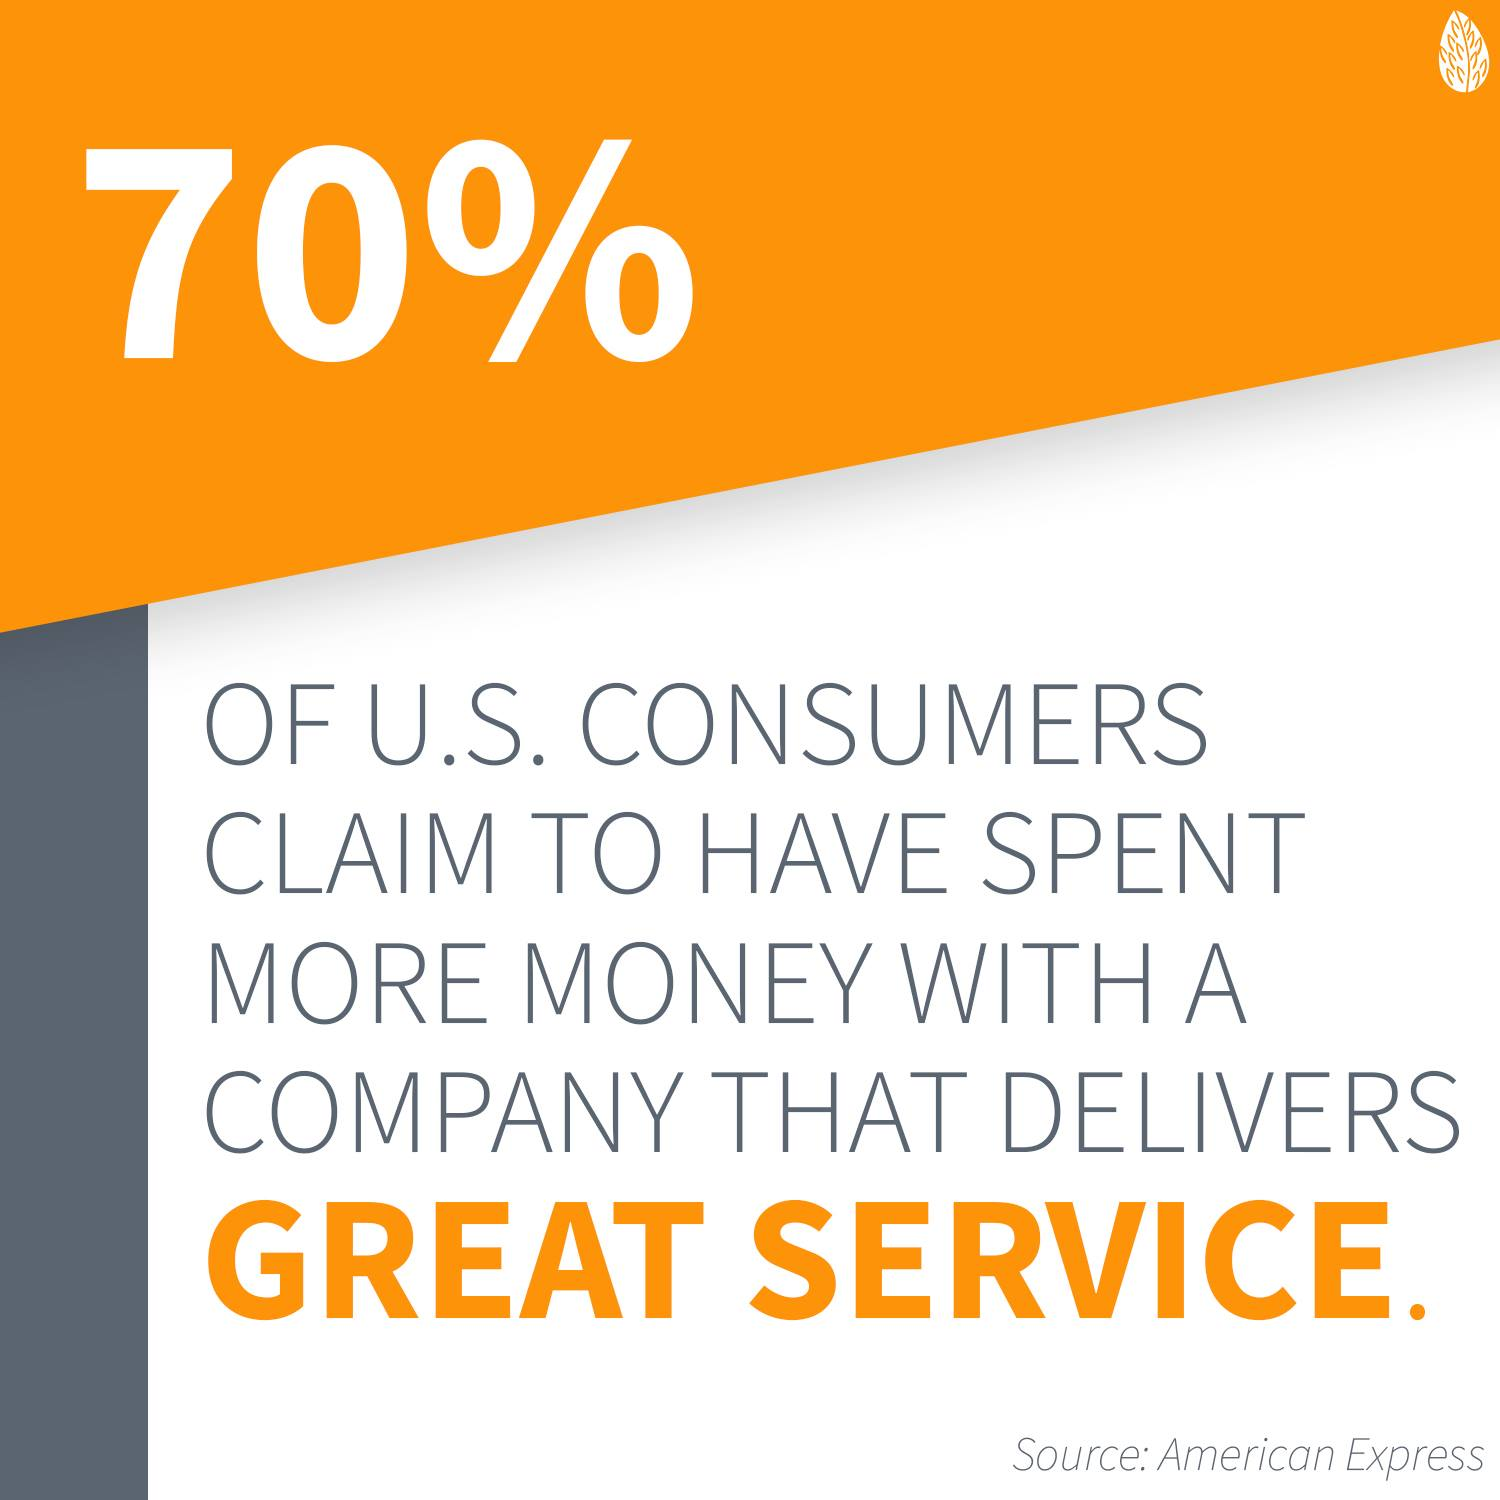 consumers spend more on service